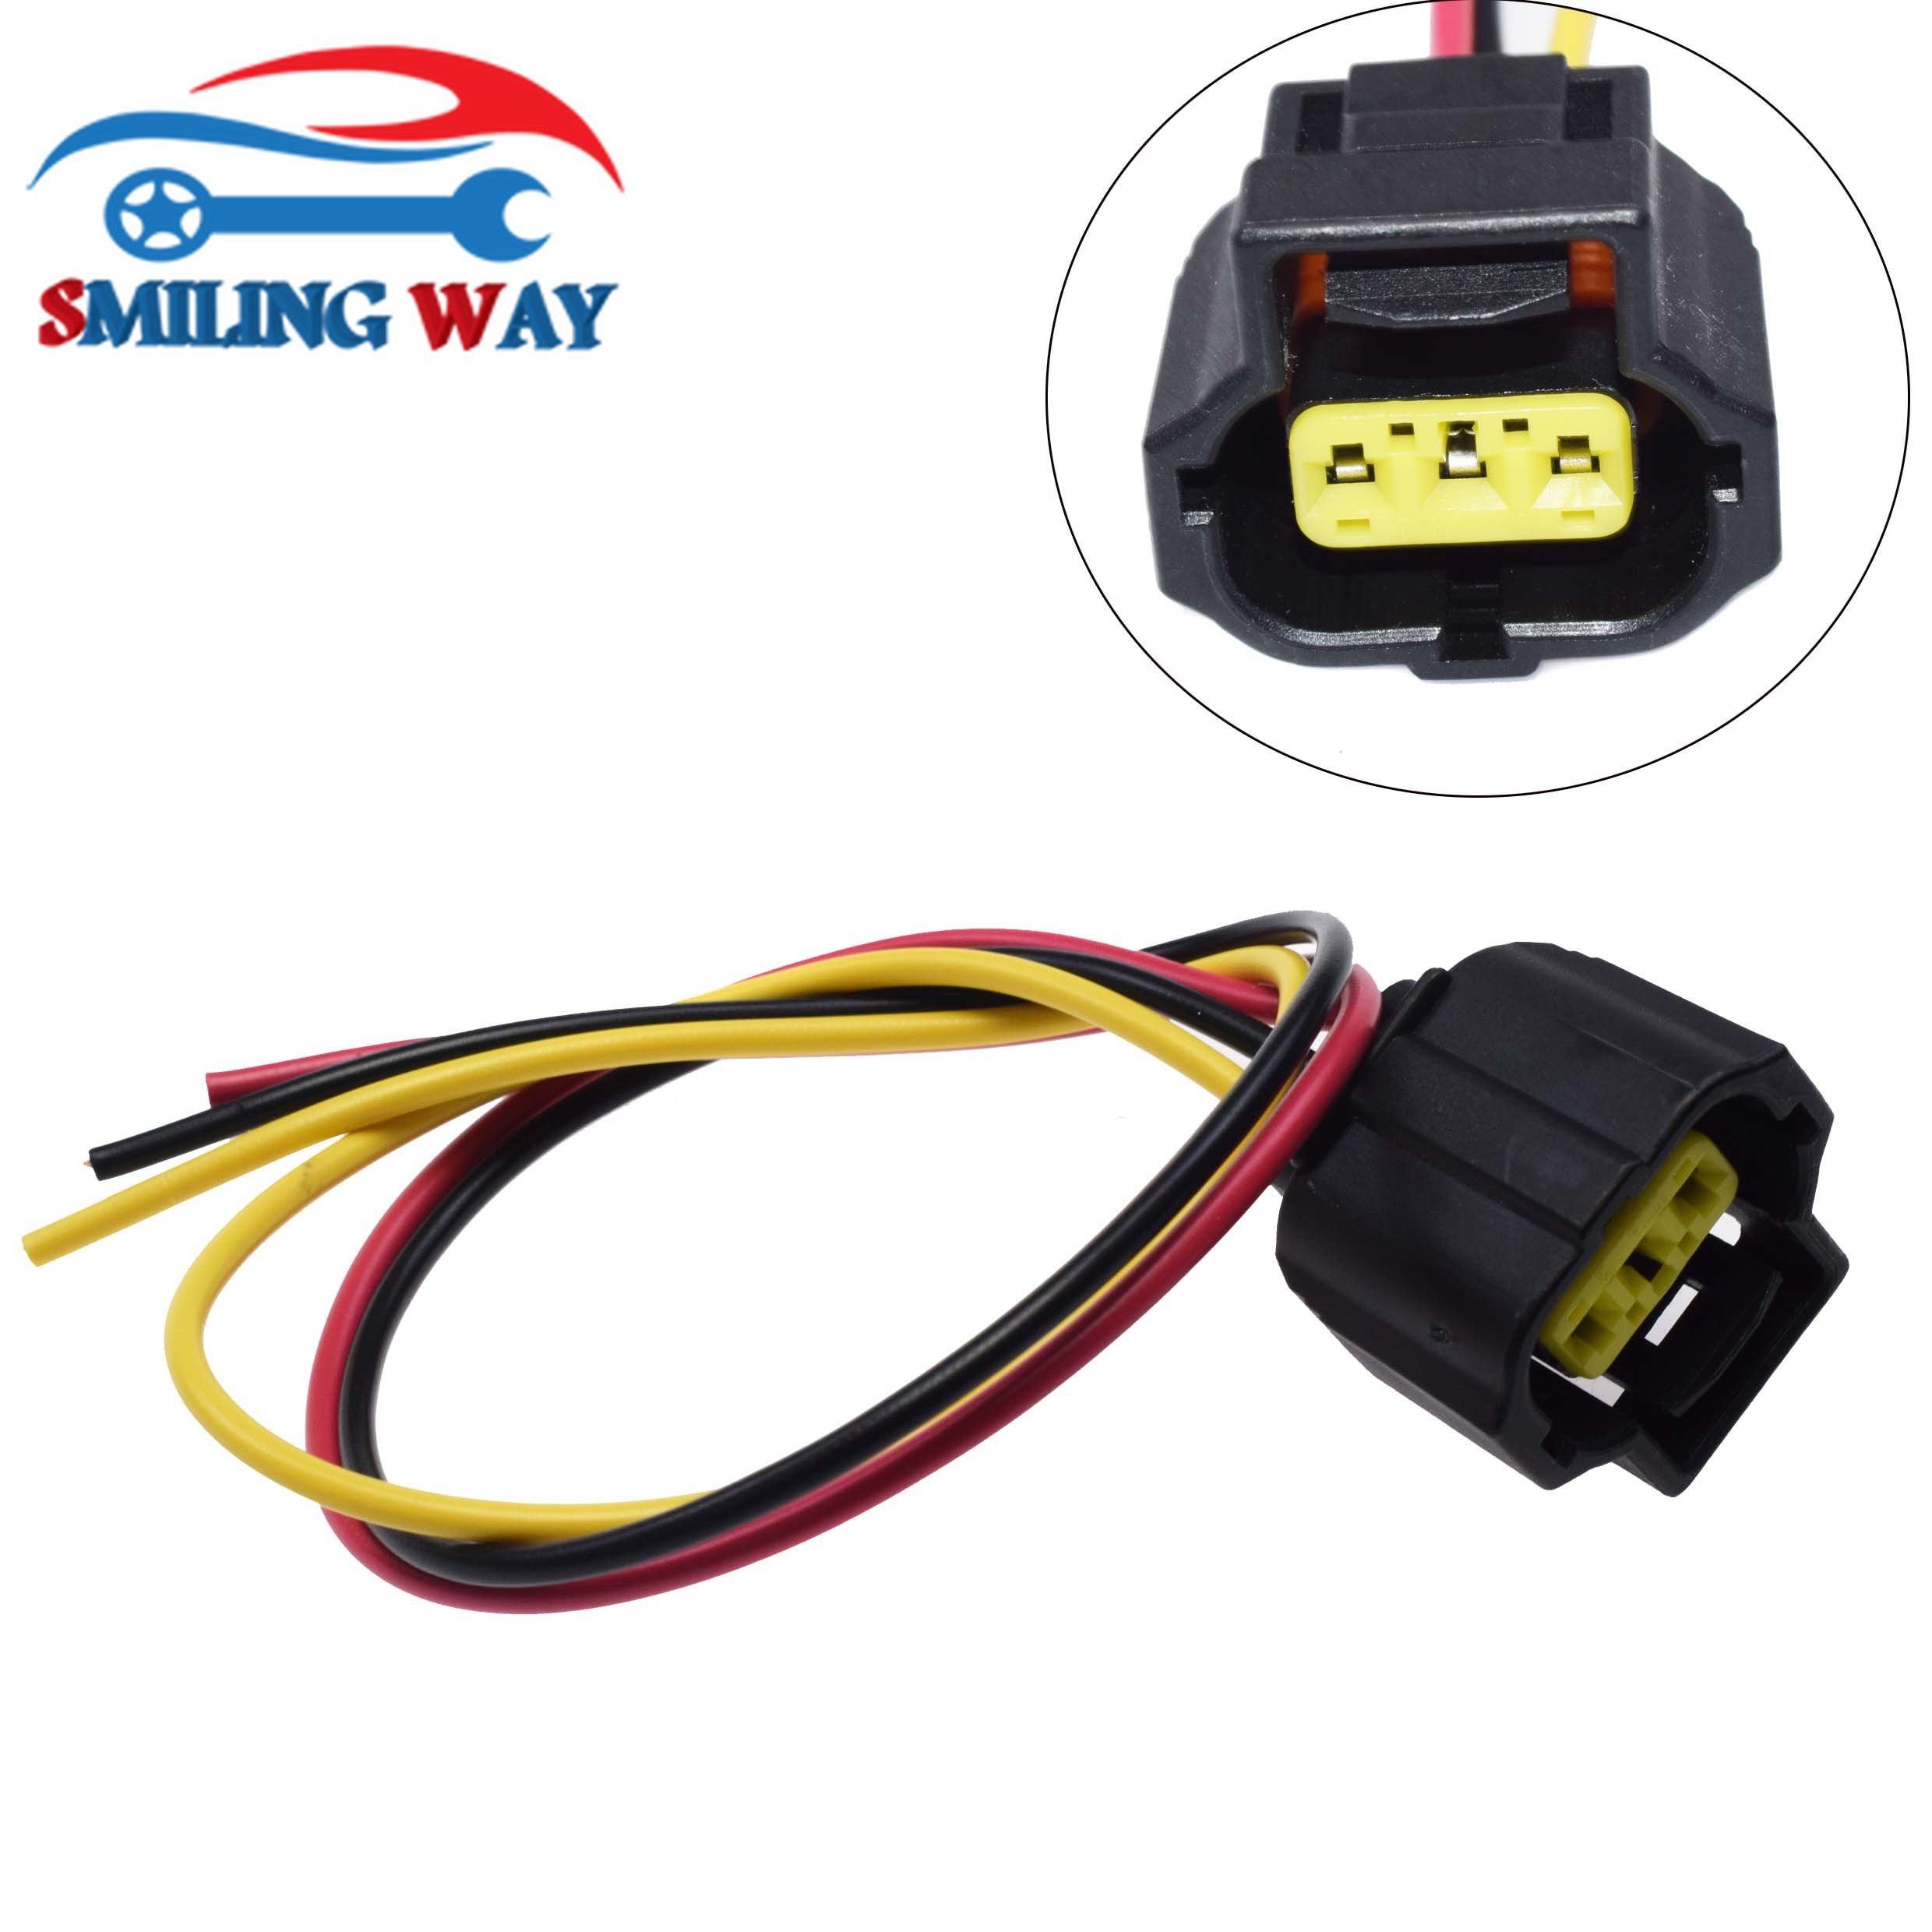 SMILING WAY# 3 pins Sensor Alternator Connector Wire Harness Wiring Pigtail  Plug For Cadillac Chevrolet Ford Mazda Saab PONTIAC|Fuel Inject. Controls &  Parts| - AliExpressAliExpress